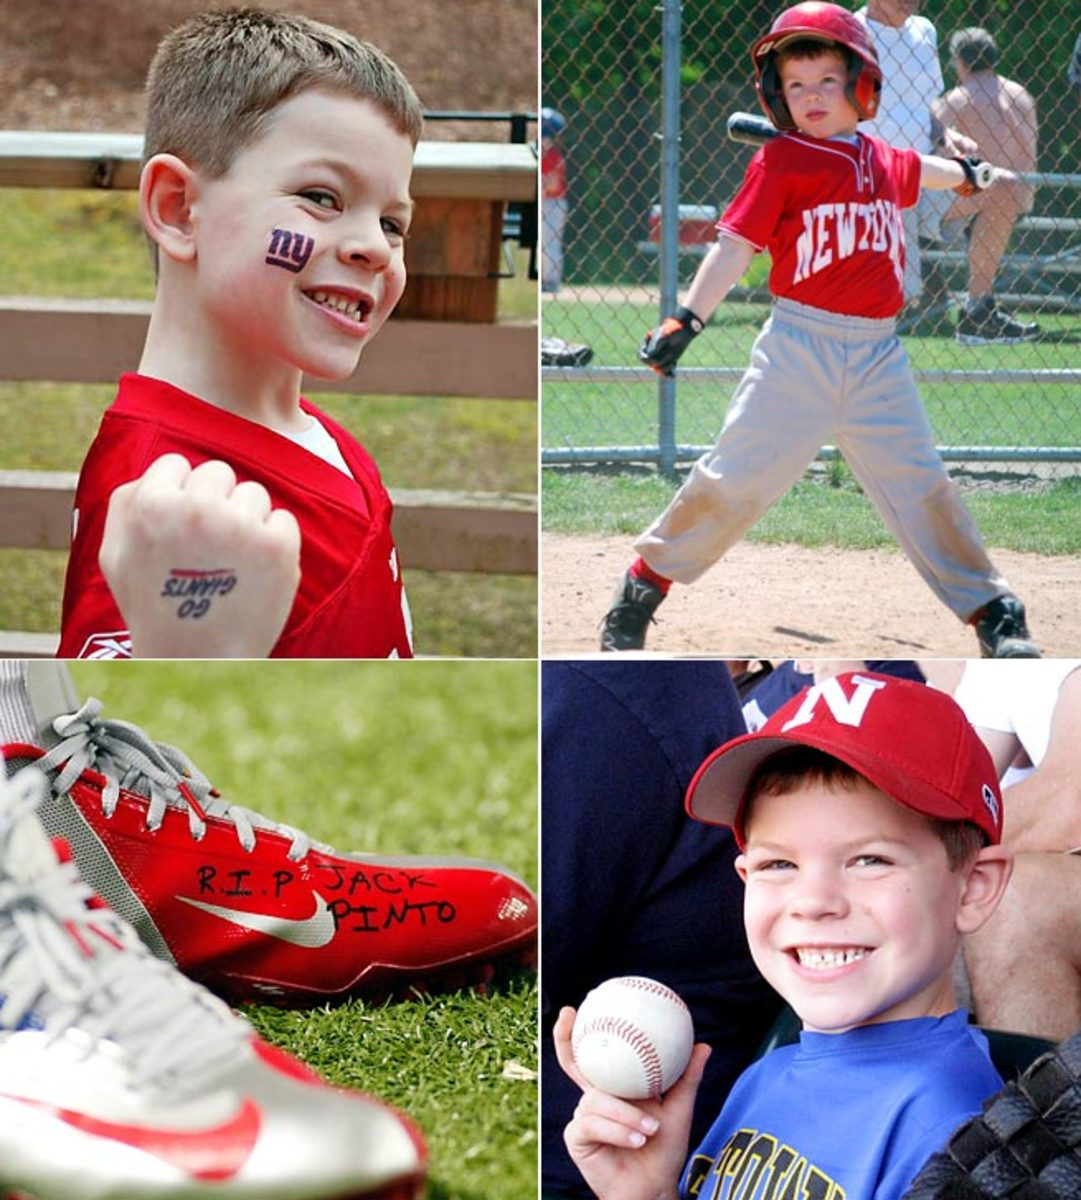 Jack Pinto, 6, was one of the 26 victims of Sandy Hook a year ago. He is a reminder to everyone who loves sports that we all were Jack Pinto once.